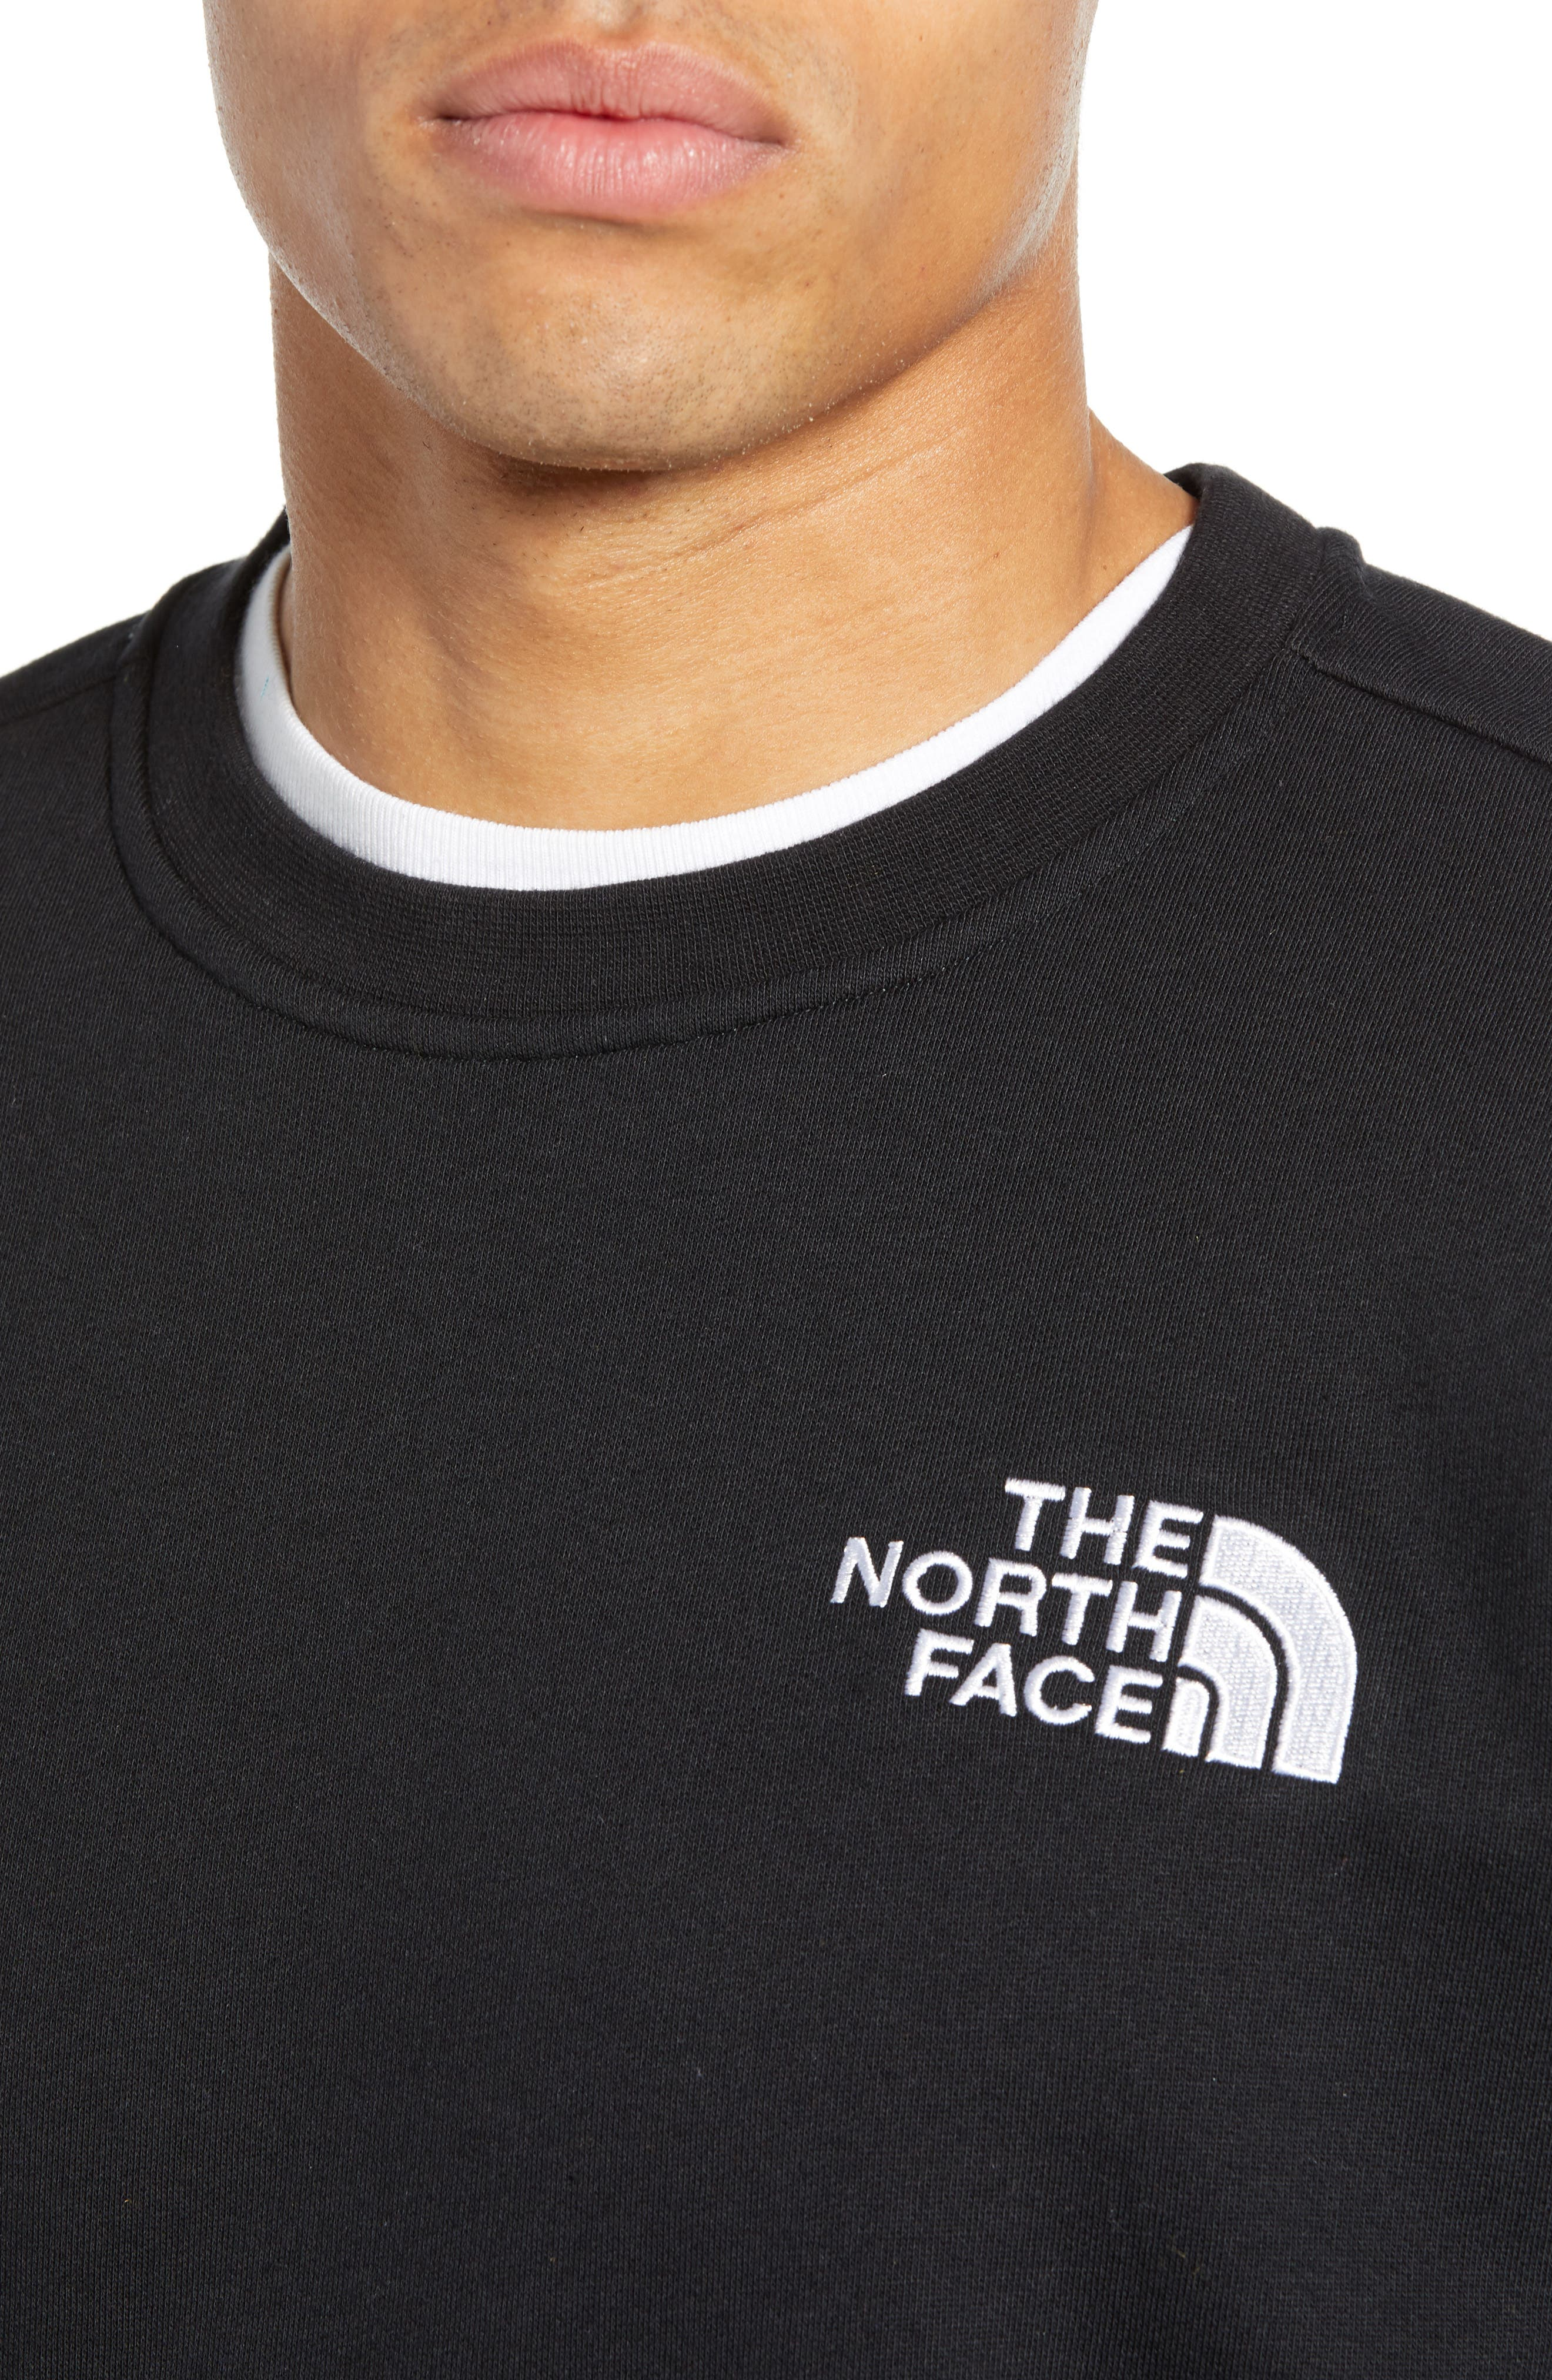 THE NORTH FACE, 1992 Rage Collection Sweatshirt, Alternate thumbnail 4, color, 001